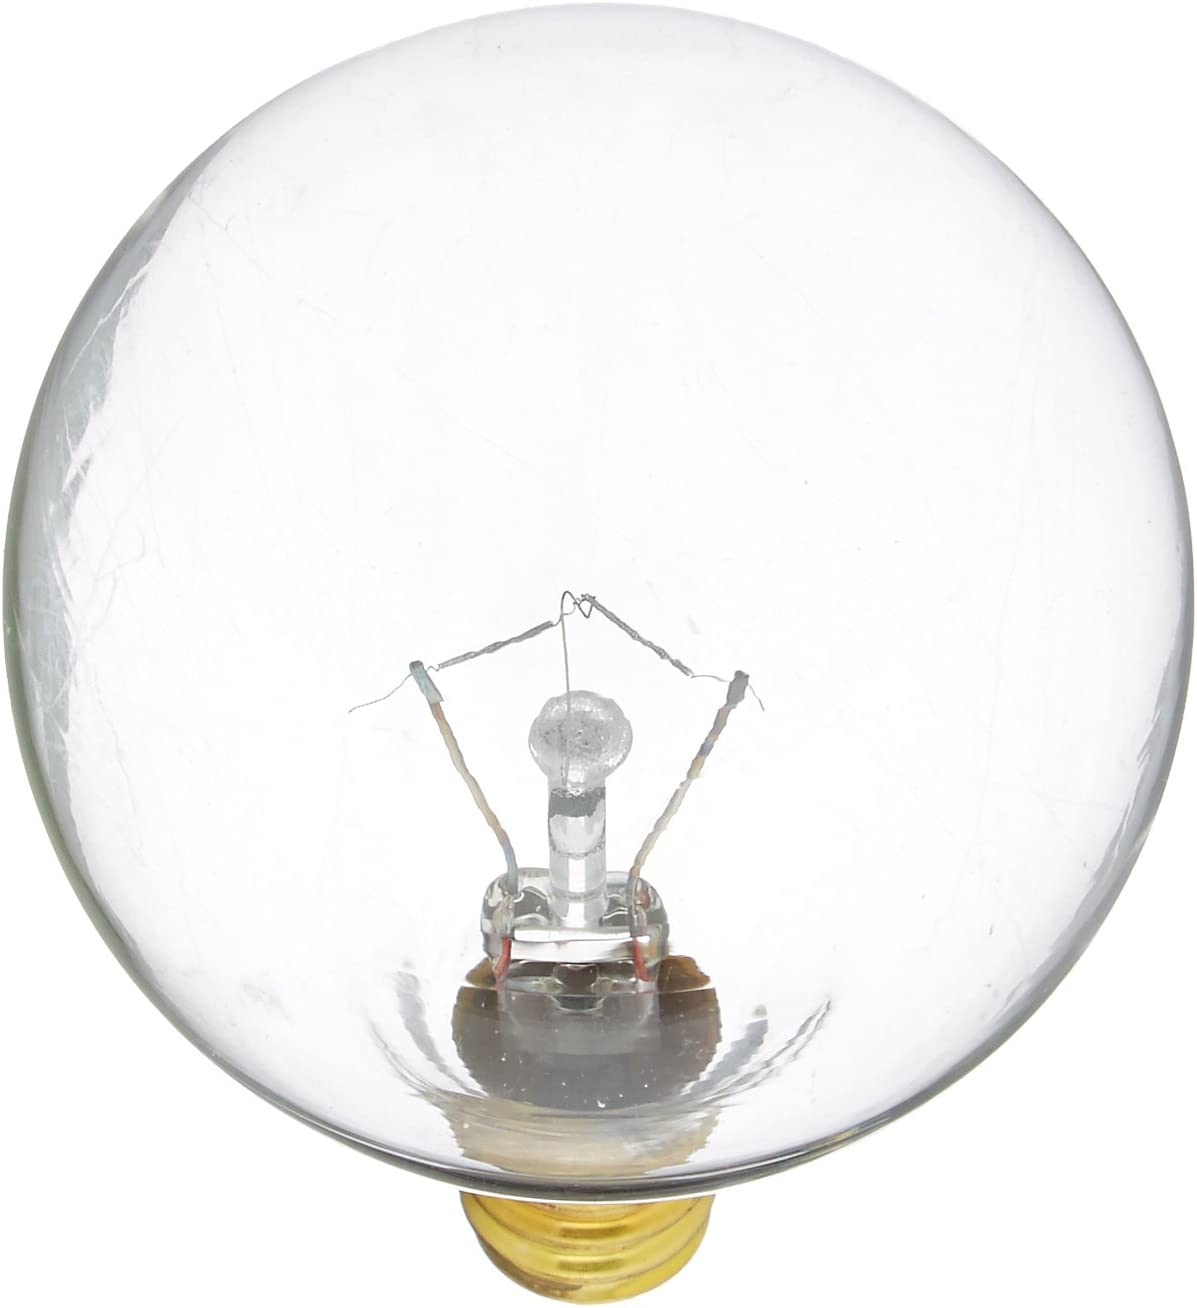 Now free shipping Bulbrite Pack of 40 Boston Mall 25 Watt Clear Dimmable Candela Globe G16.5